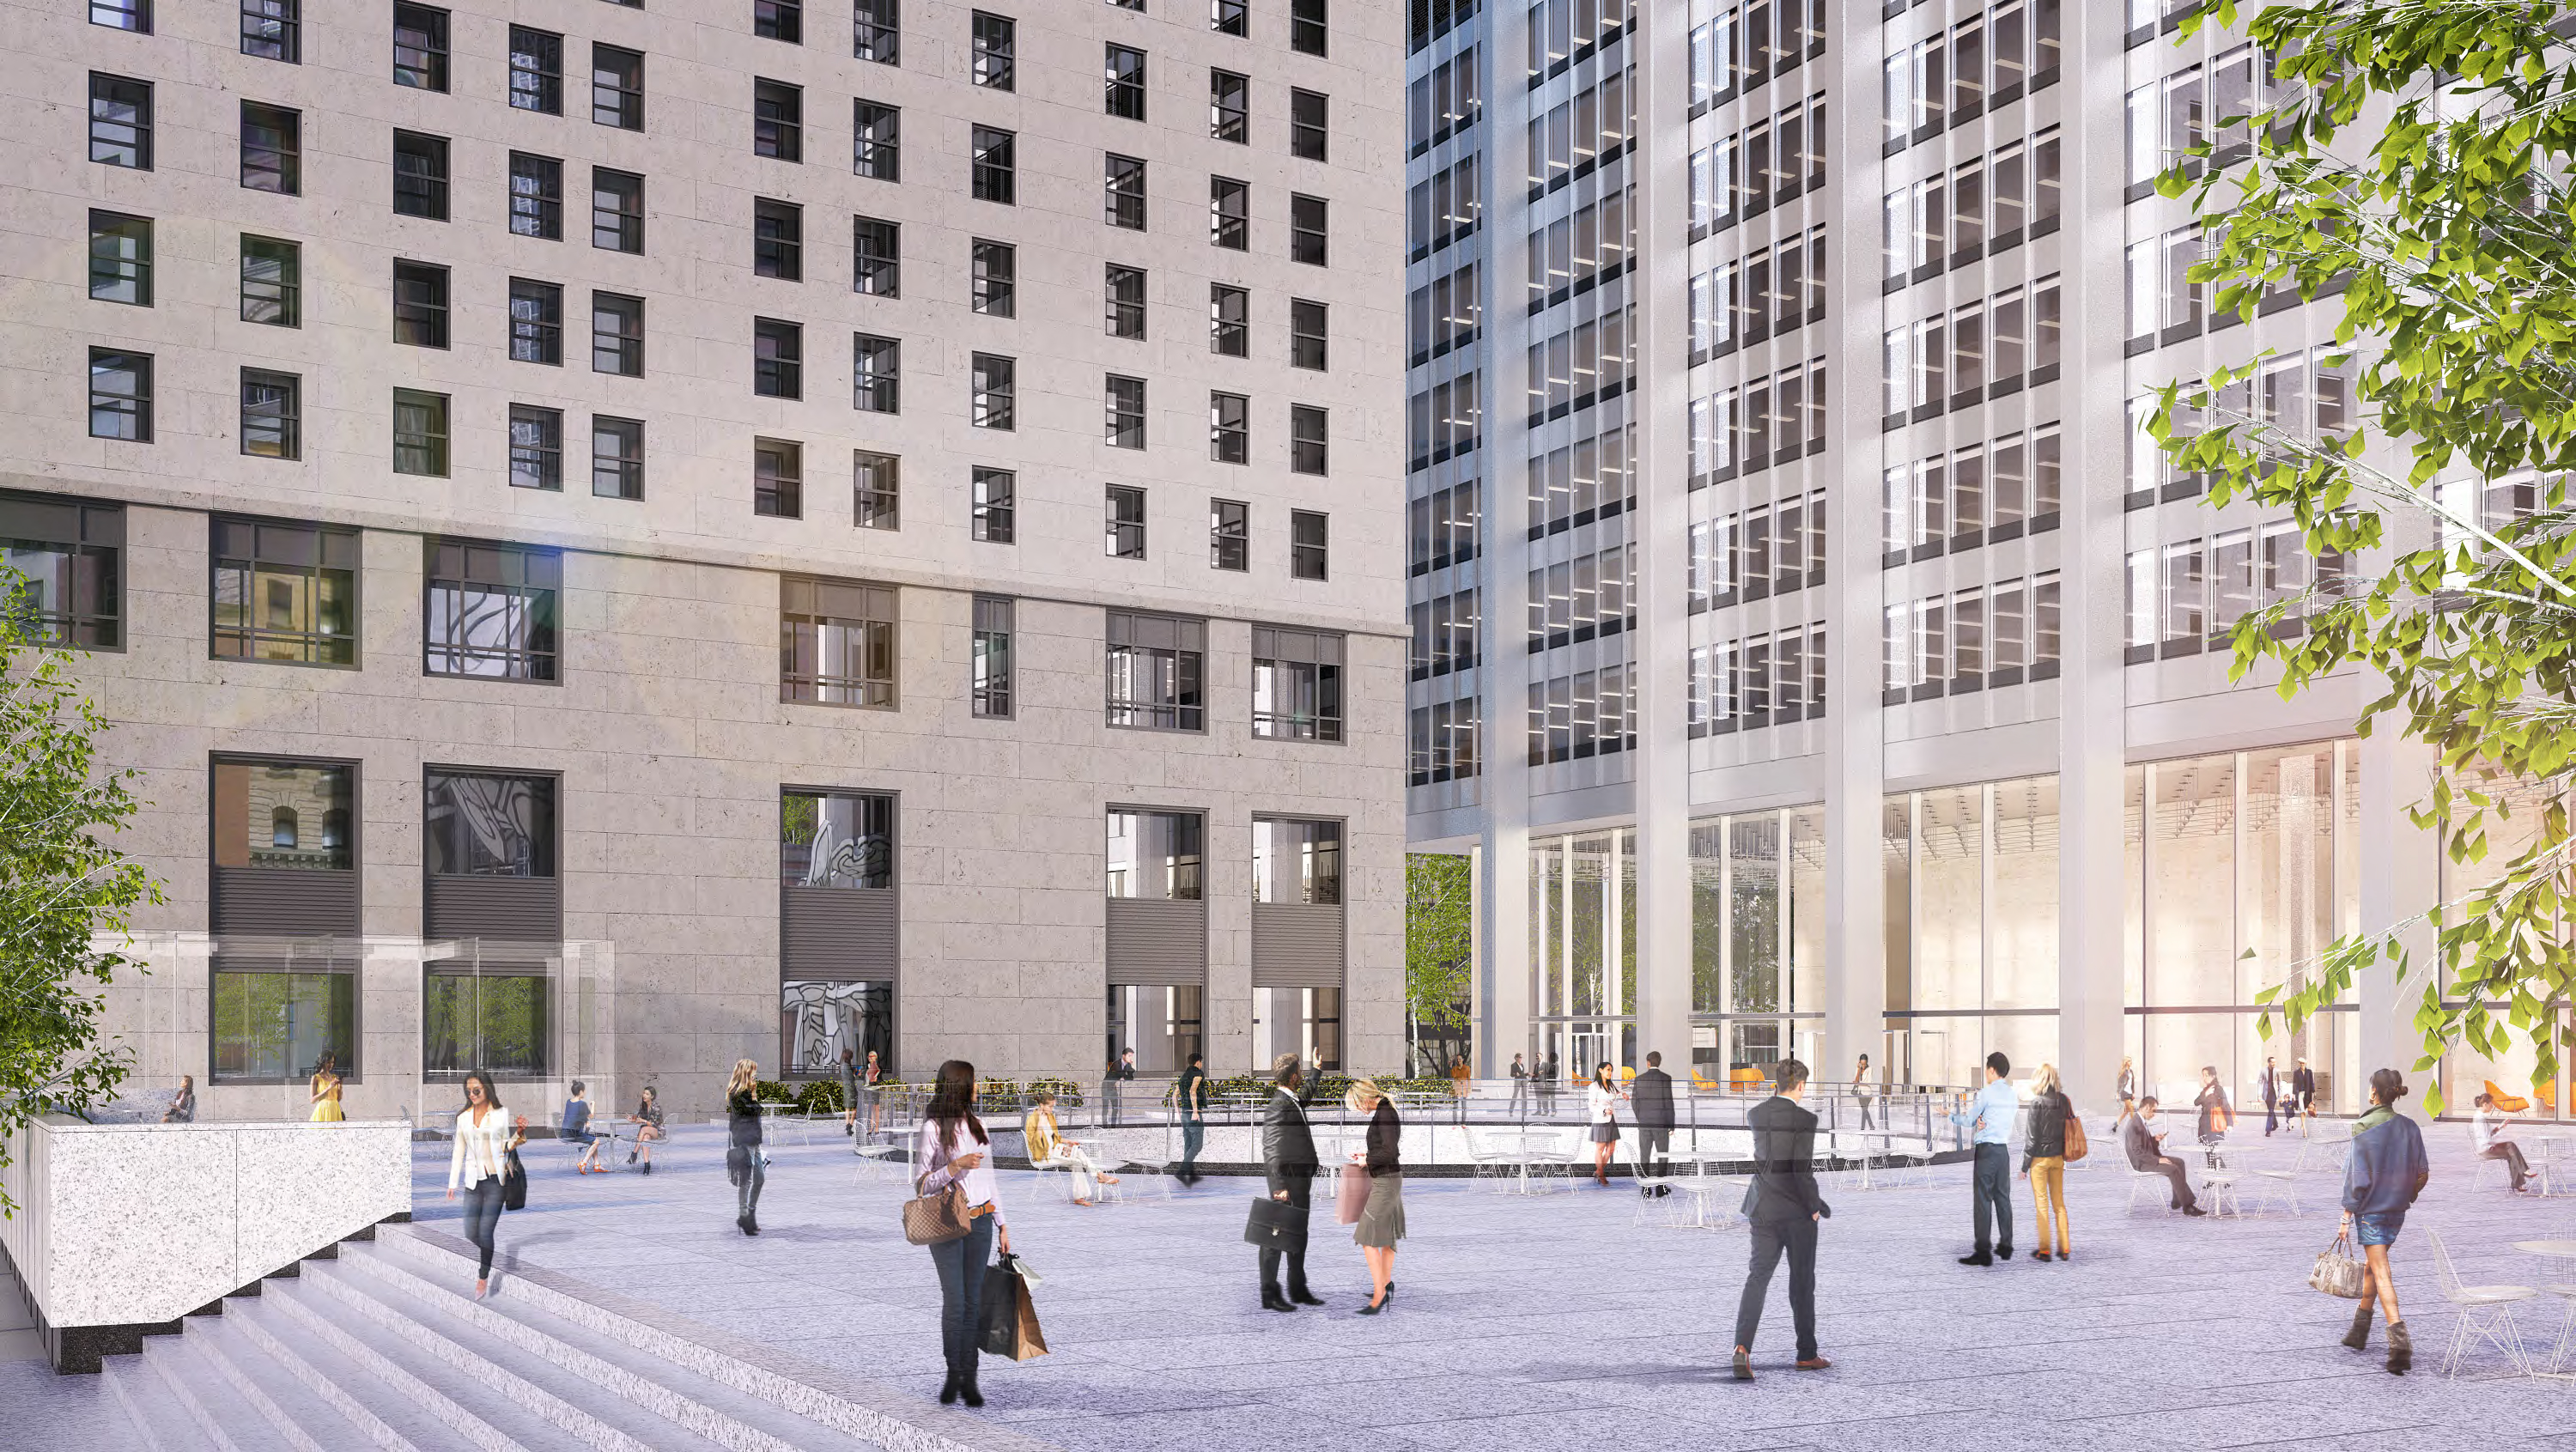 Rendering of the plaza at 28 Liberty Street as seen from the Pine Street entrance.